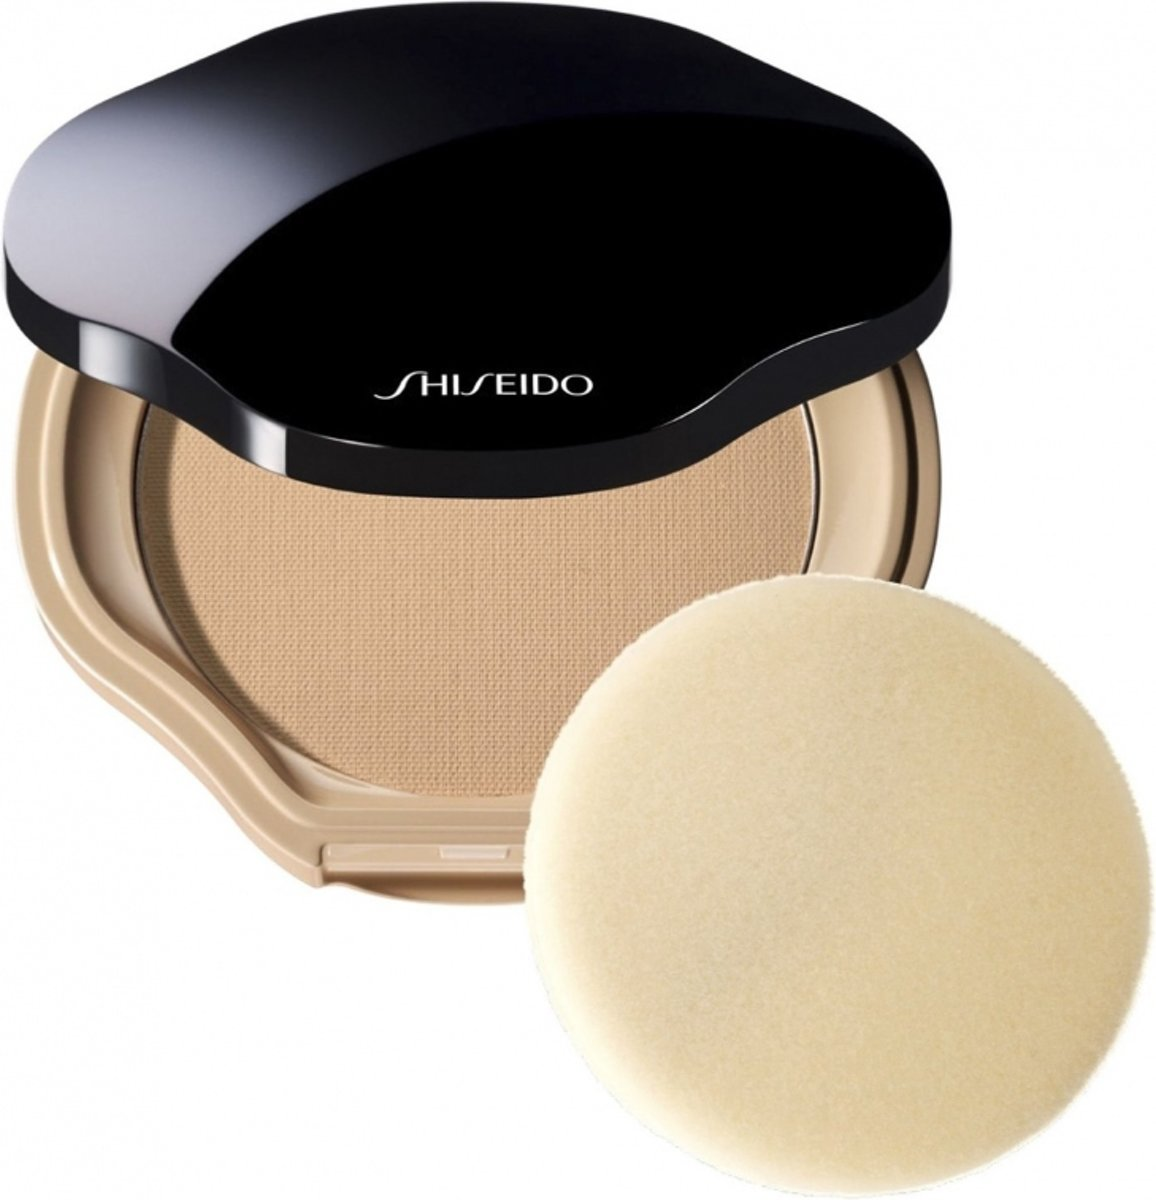 Shiseido Sheer and Perfect Compact Foundation 10 gr - I60